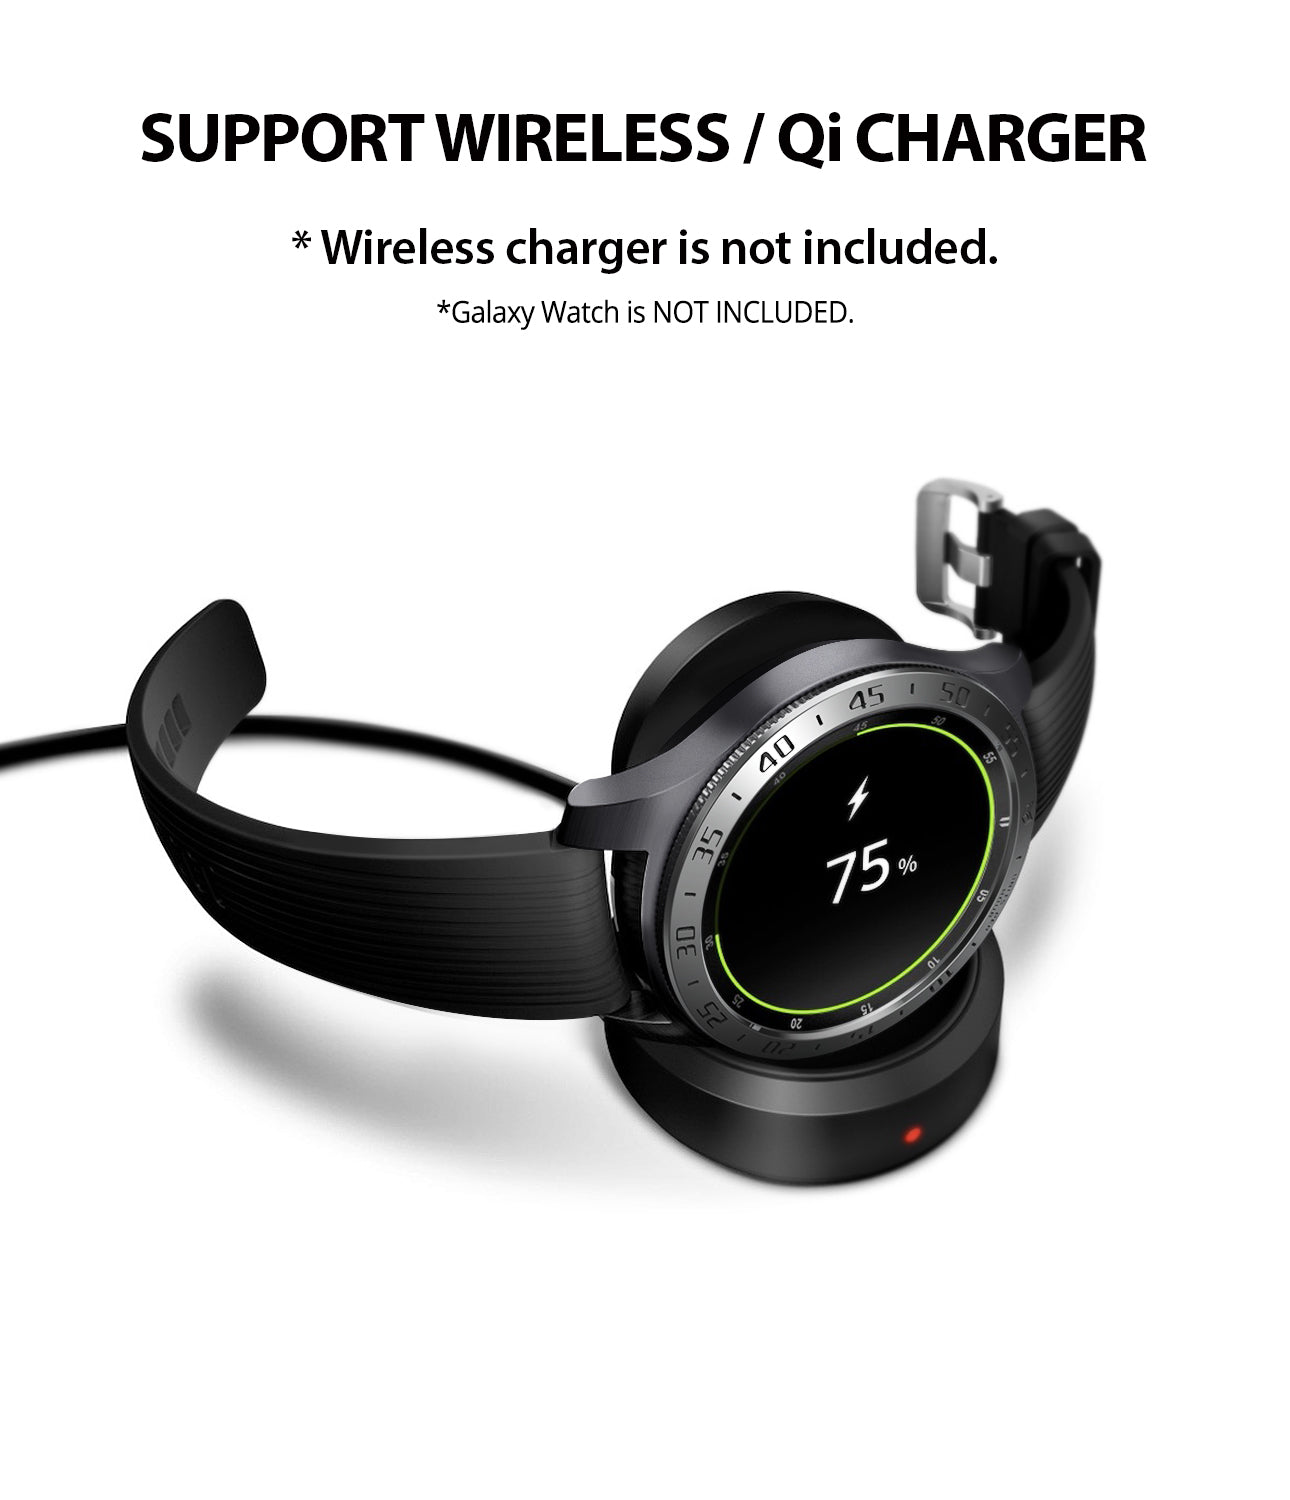 ringke bezel styling compatible with wireless, qi charging without removing the cover